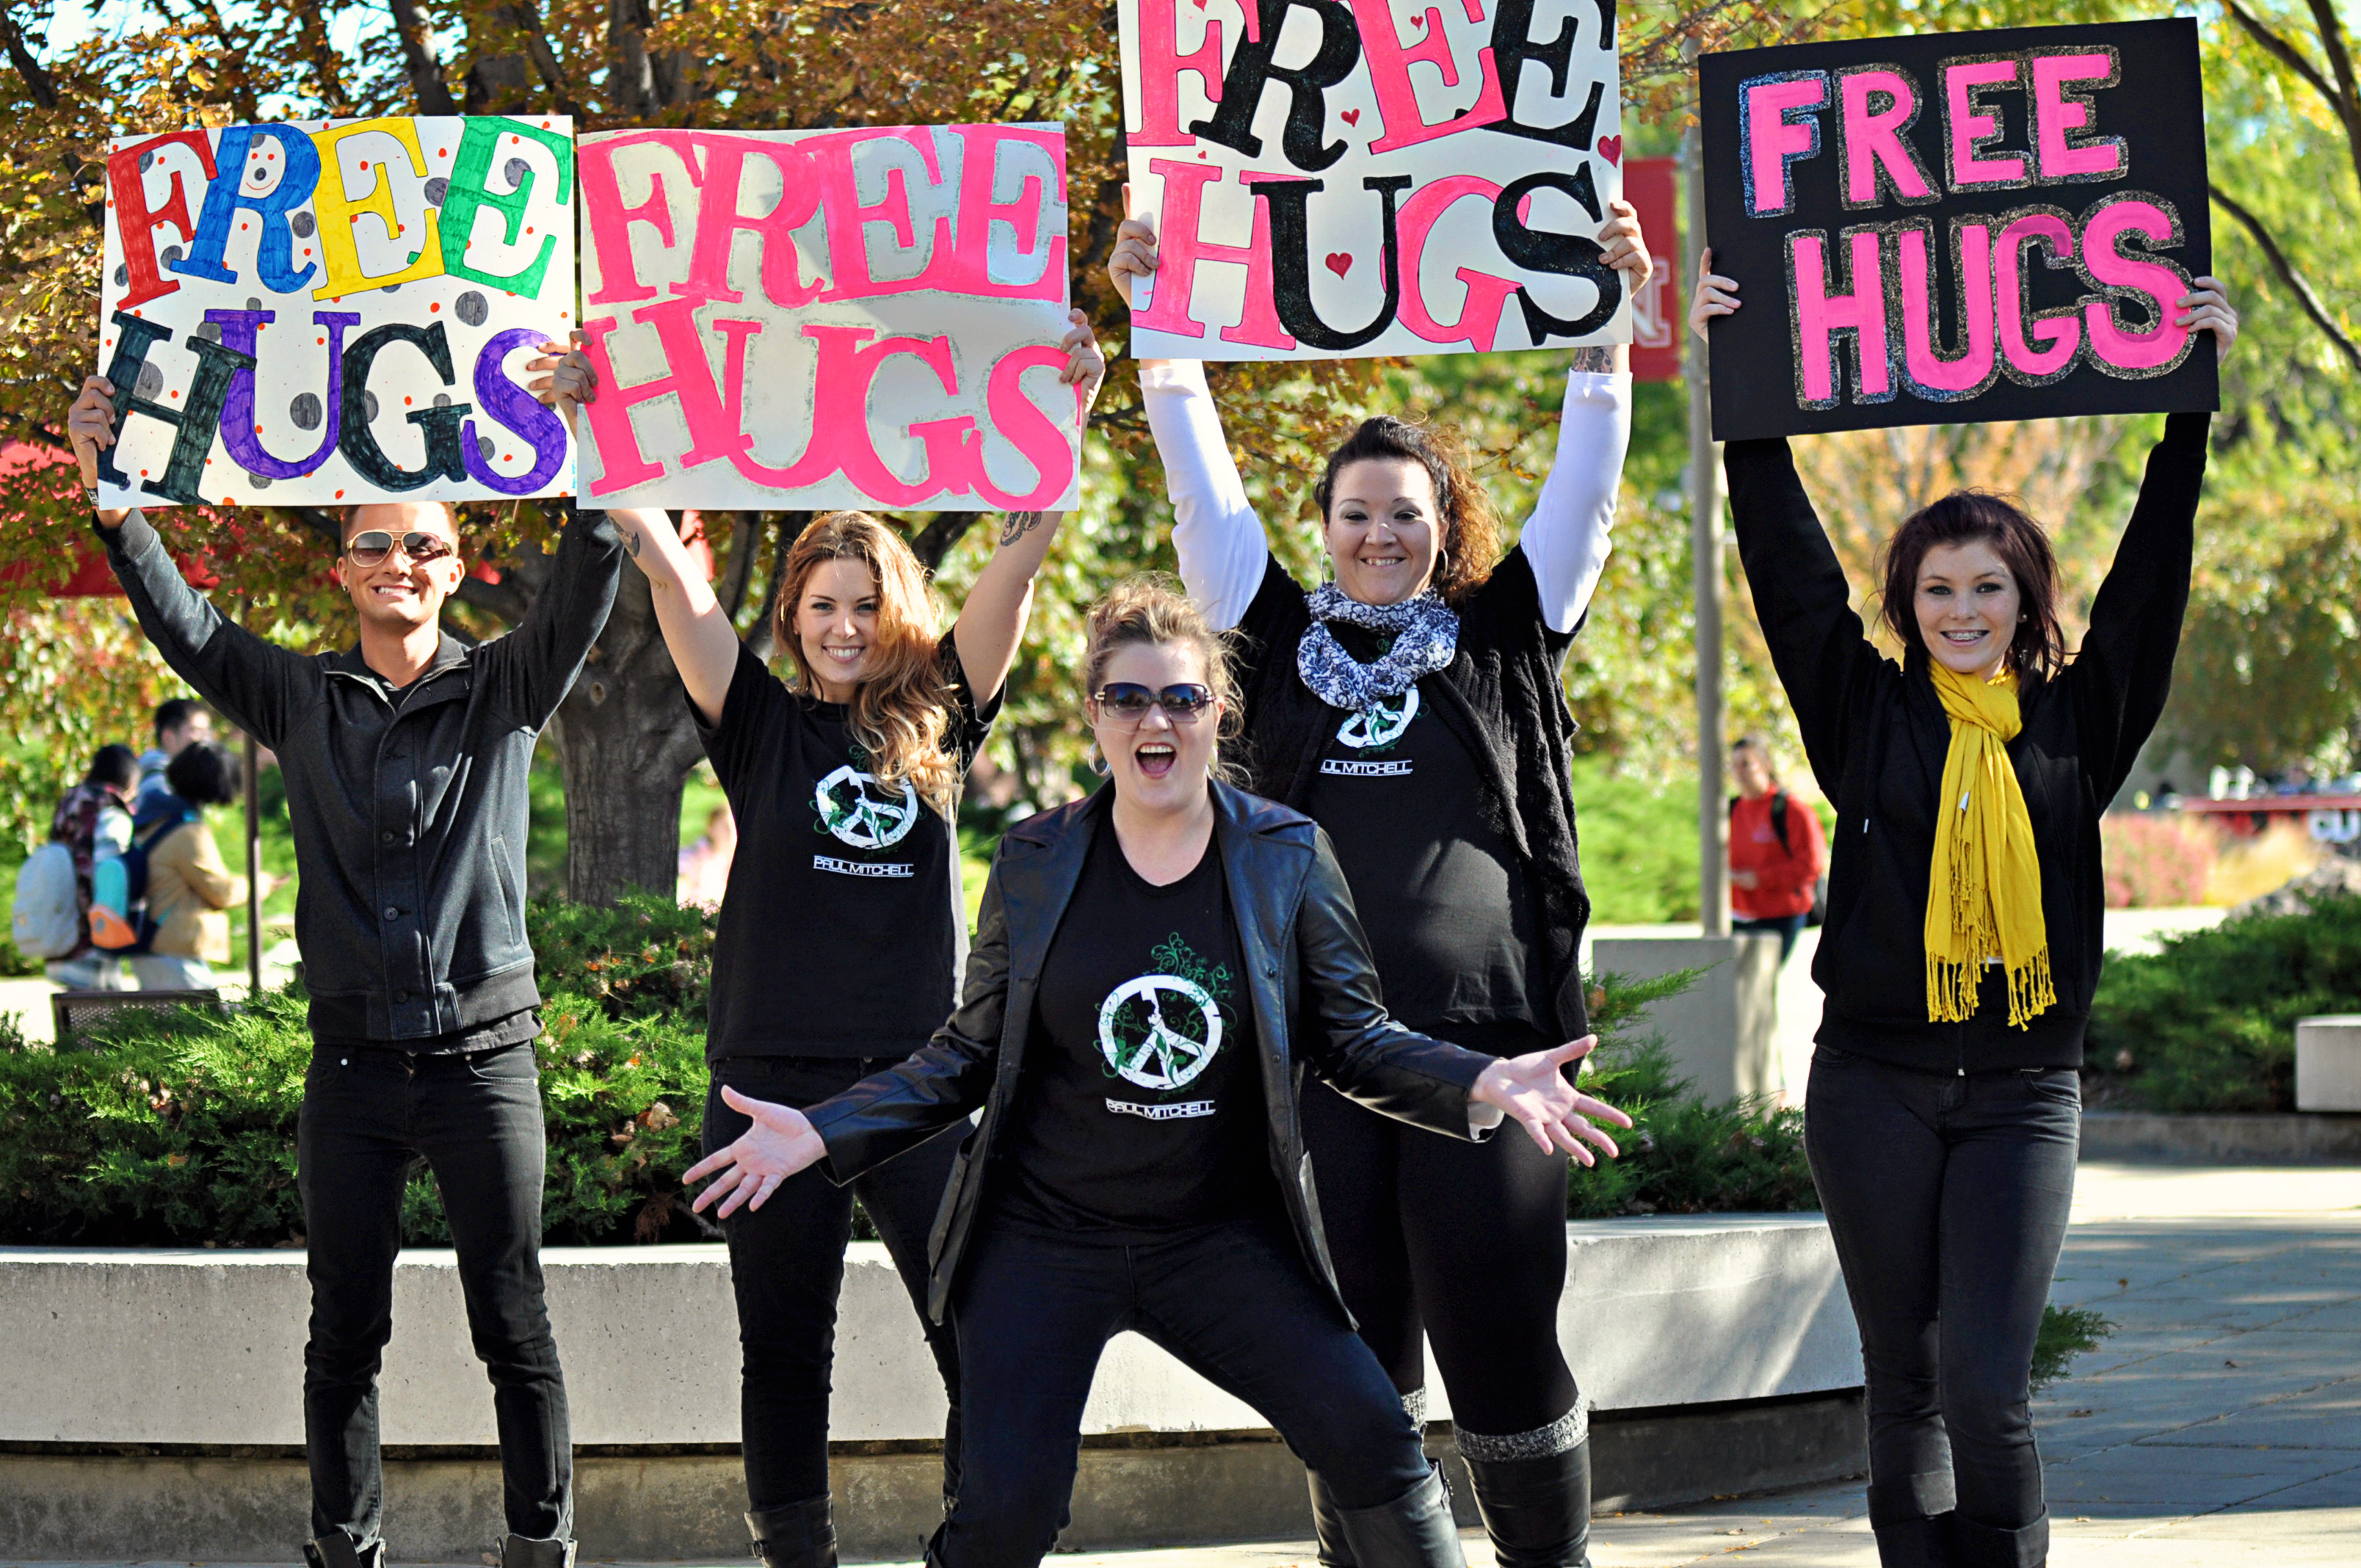 Paul Mitchell Schools Announce 7th Annual Free Hugs Day